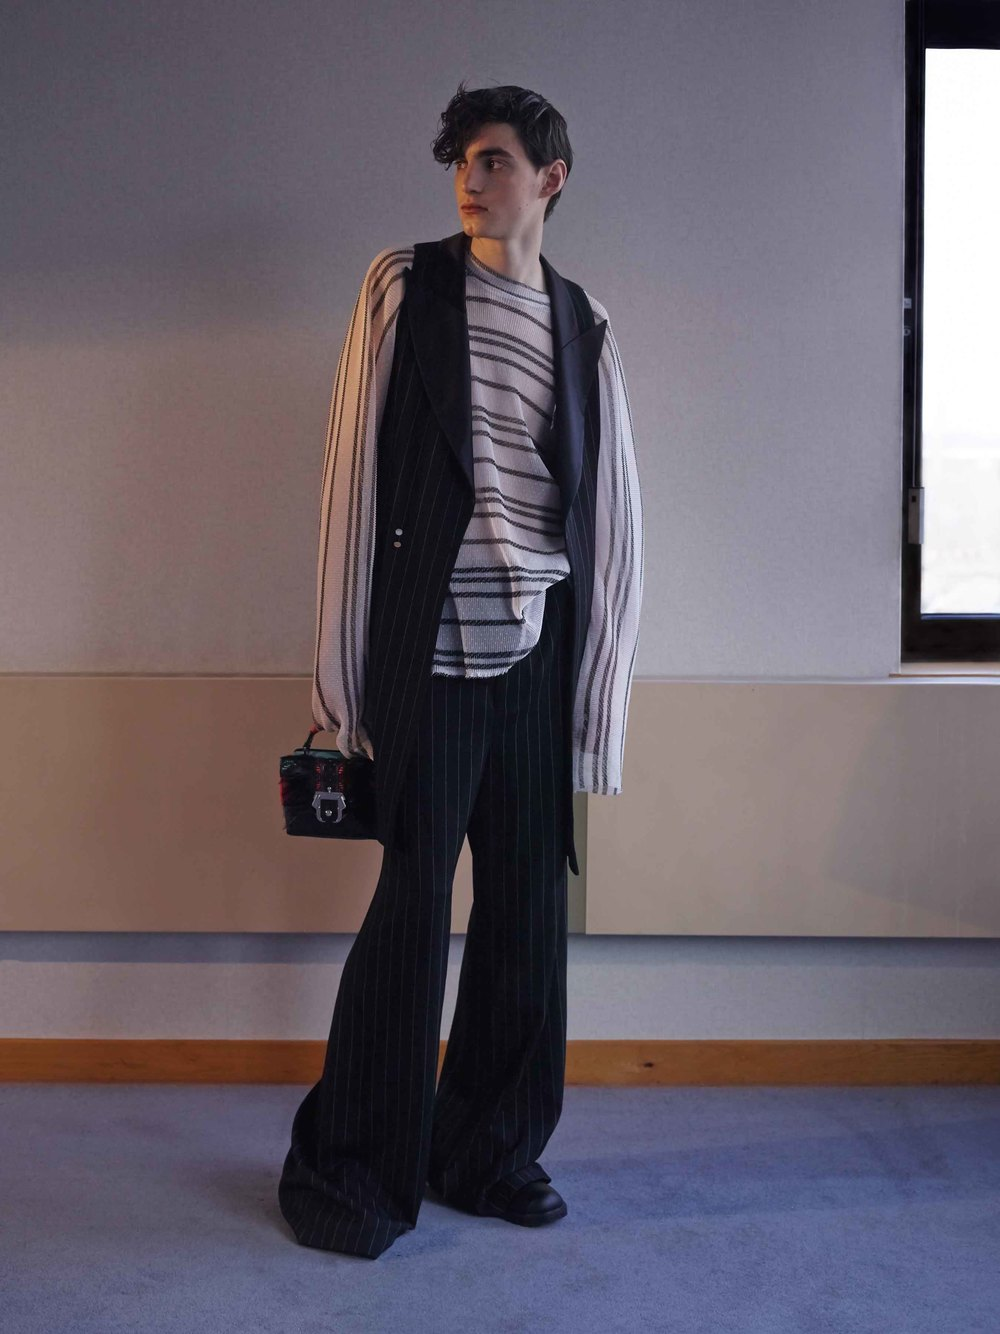 Waist Coat by Ed Lee  Top by Xander Zhou Trousers by Ed Lee Bag by Paula Cademartori Shoes Rory Parnell Mooney